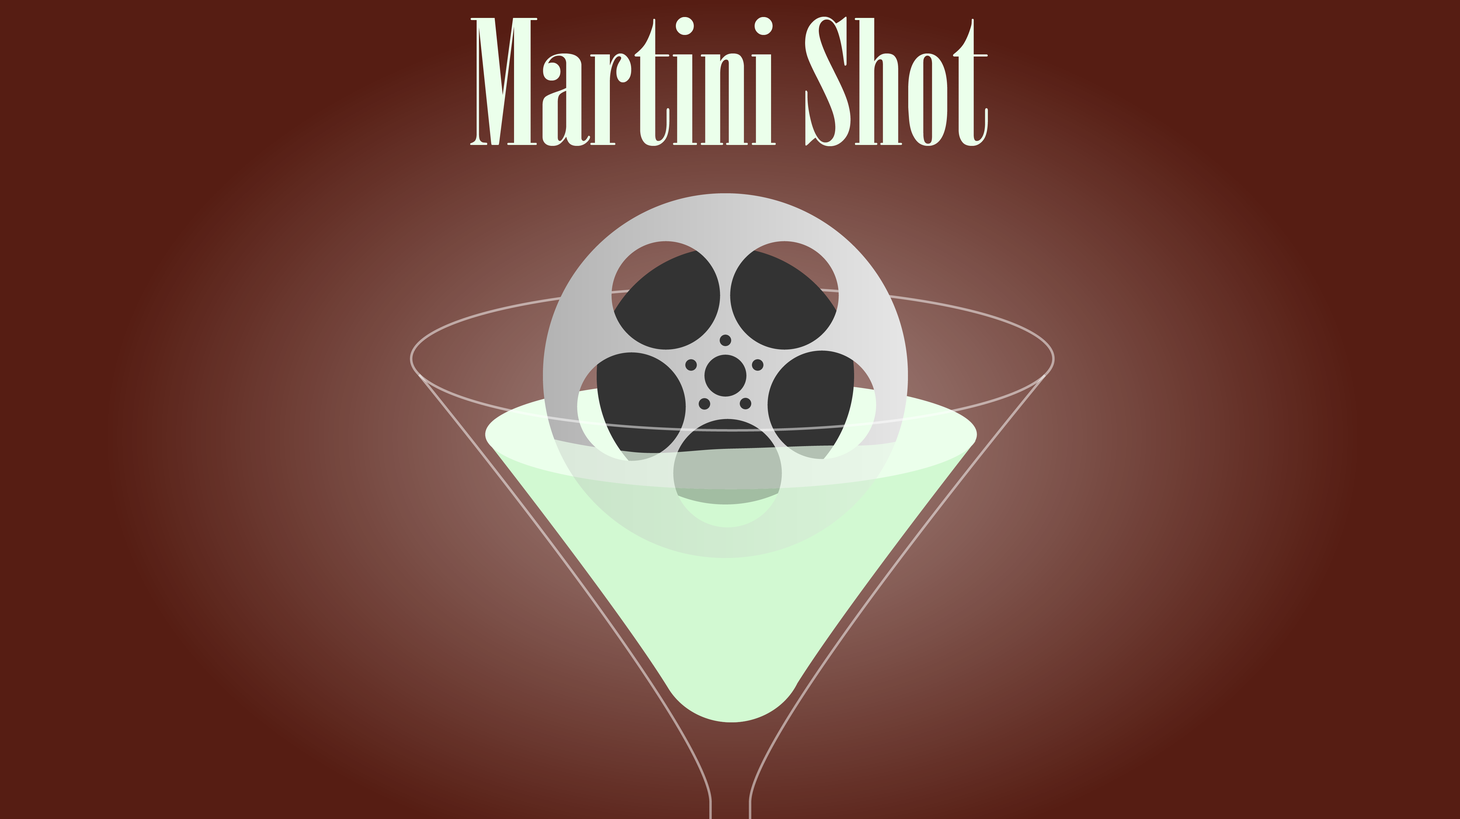 This is Rob Long and on today's Martini Shot a friend opens a new coffee place in New York and I commit acts of influencing and plugola, in exchange for a tall drip.